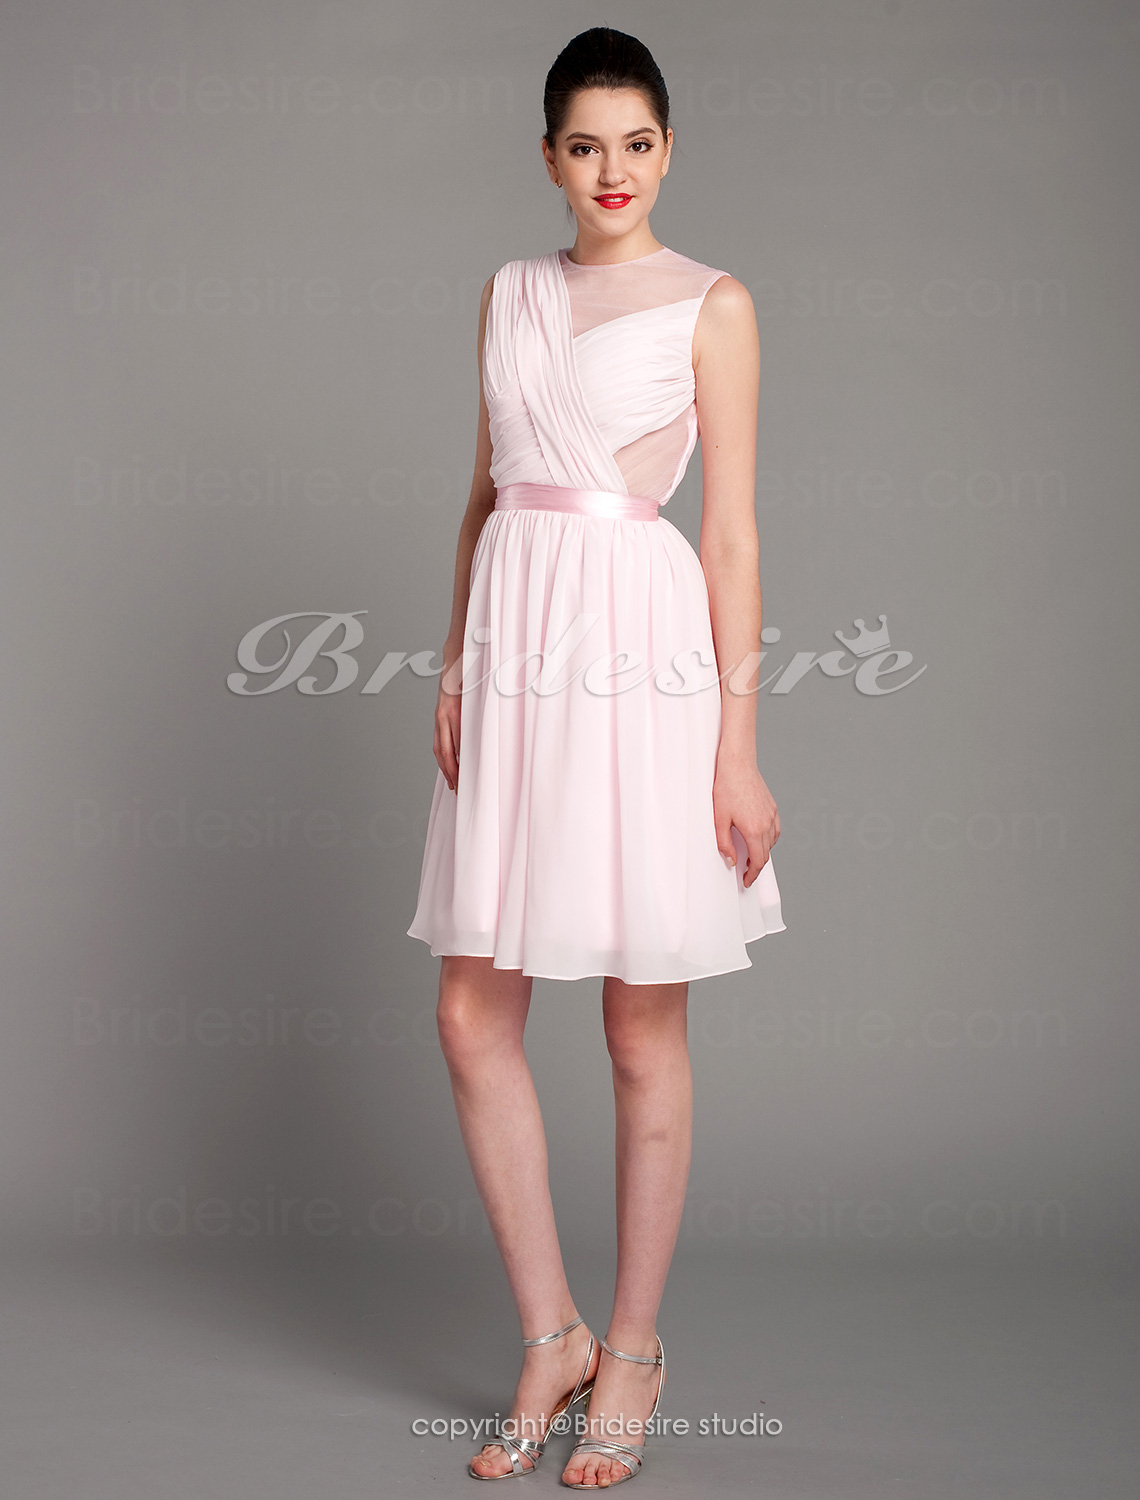 A-line Chiffon Short/ Mini V-neck Cocktail Dress